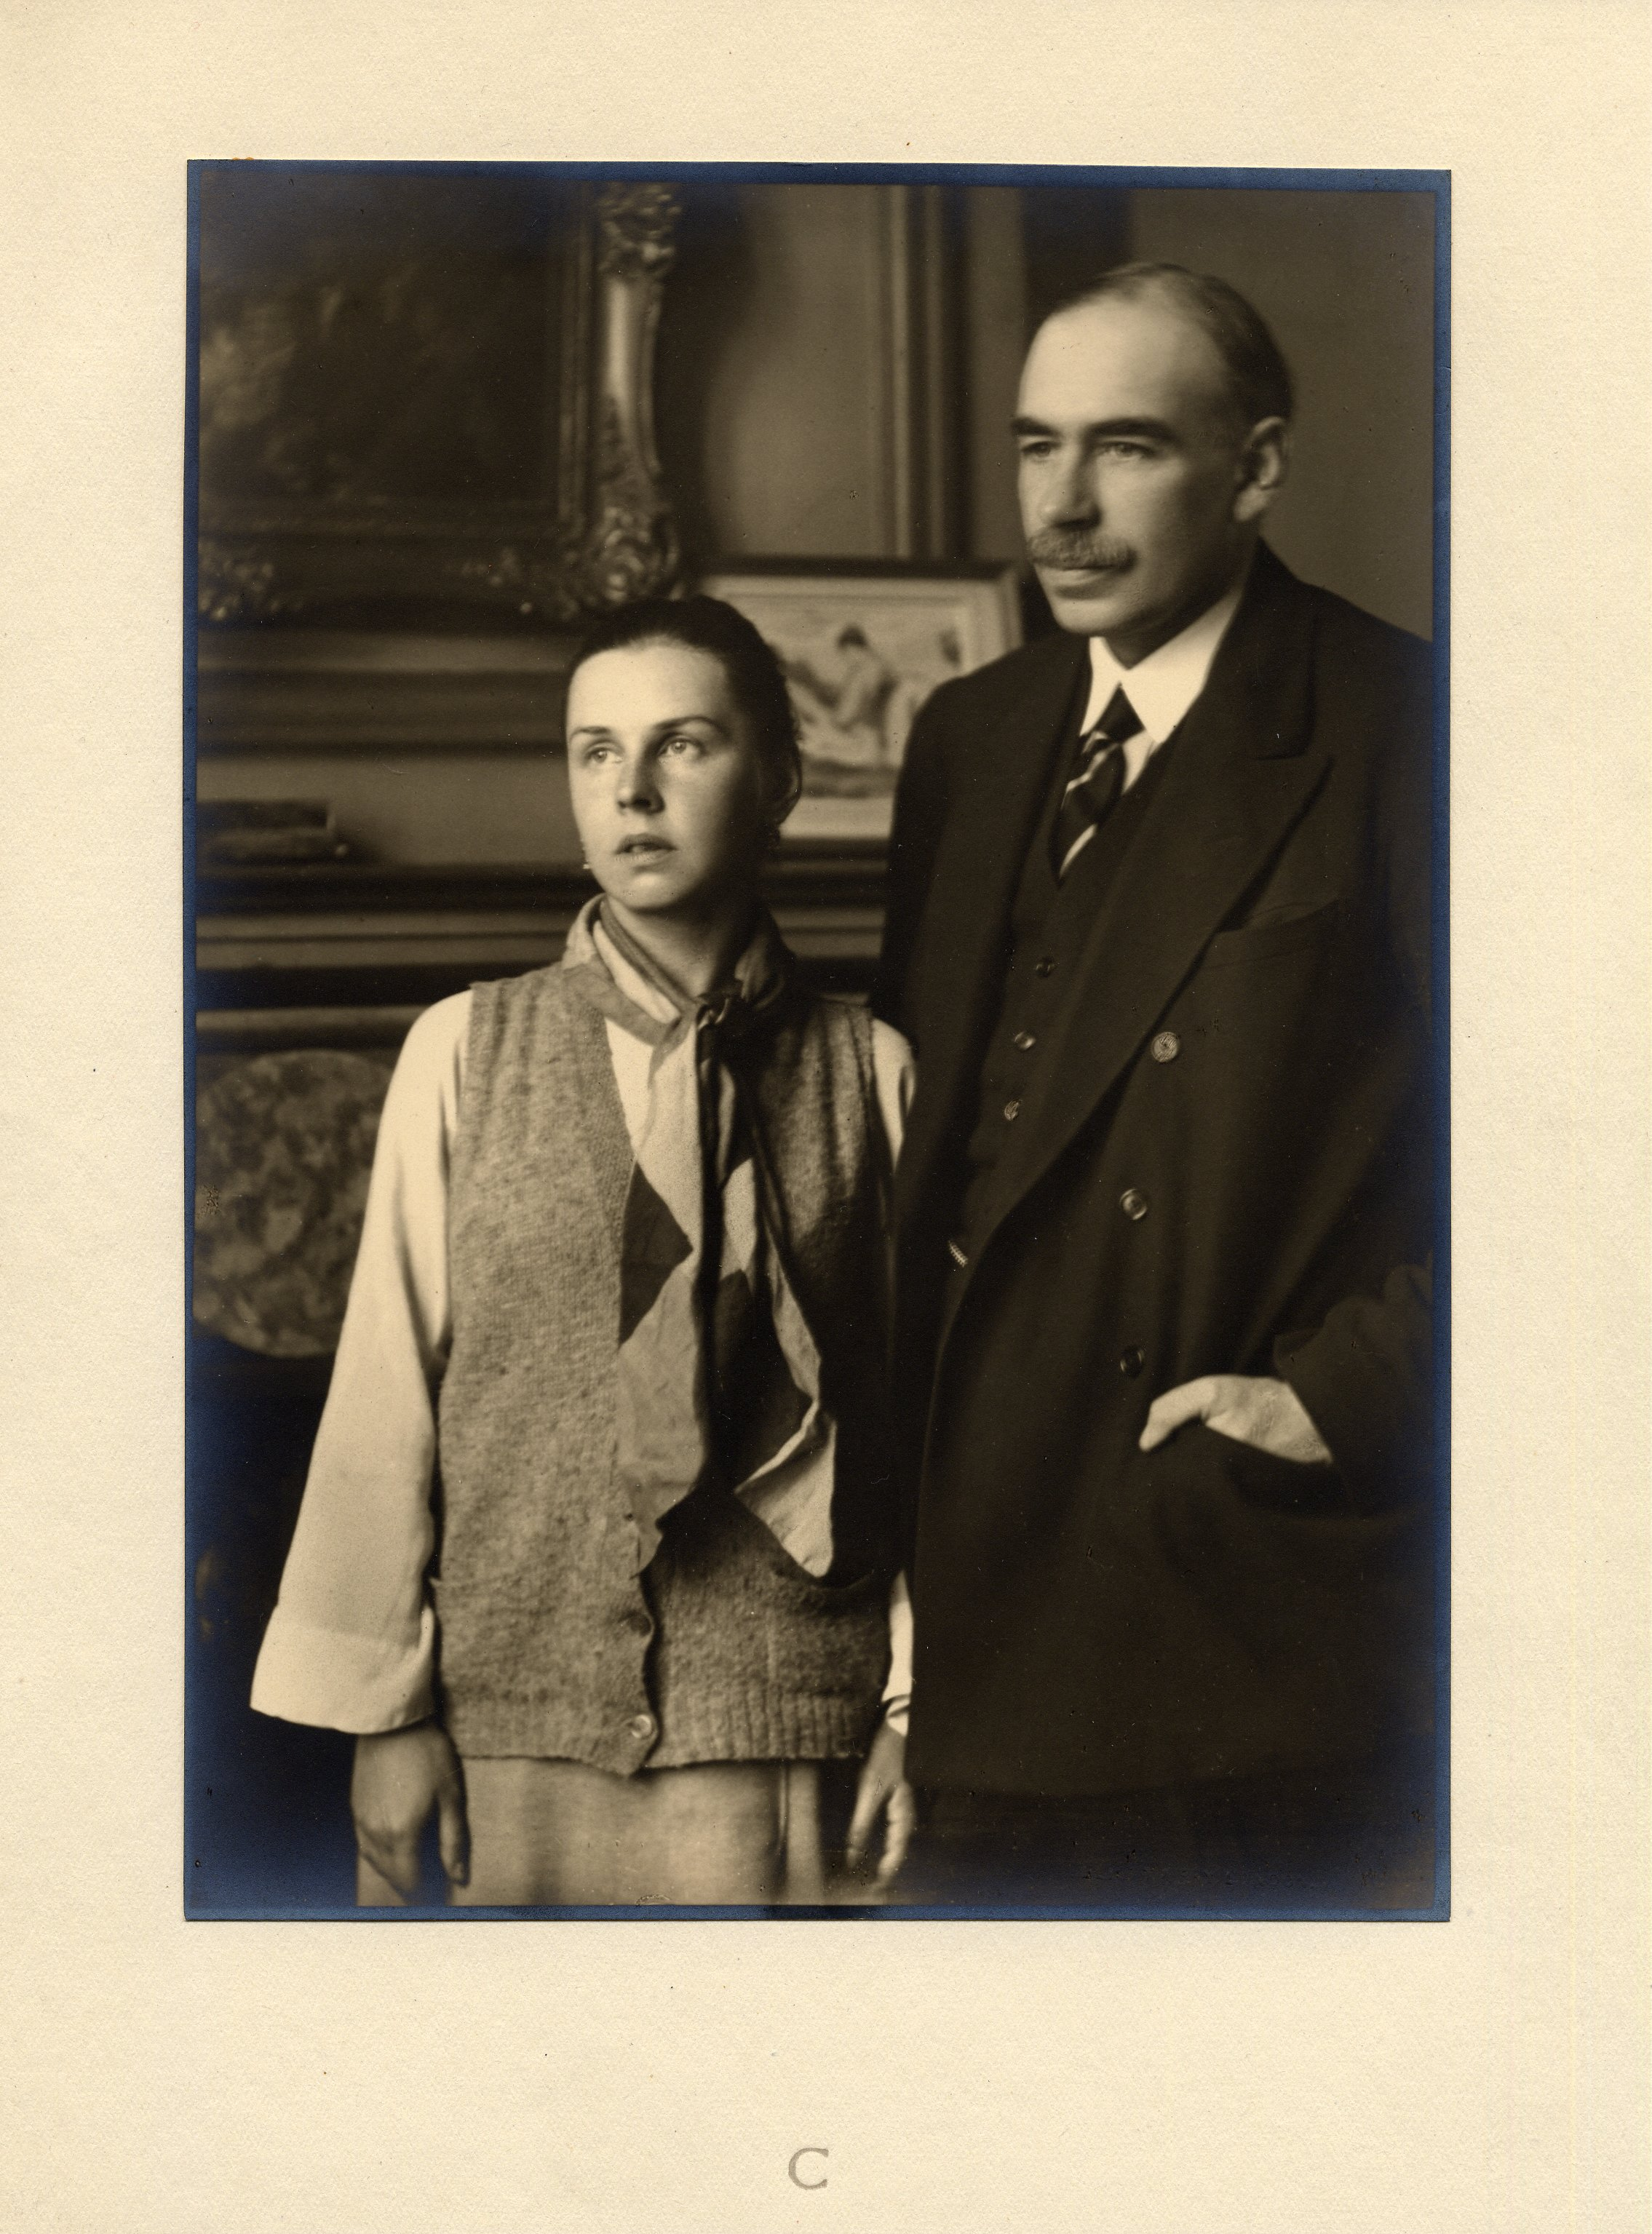 Portrait of J.M. Keynes with Lydia Keynes, in his rooms at King's College, taken by Walter Benington for Elliott and Fry Ltd. [JMK/PP/94/444A/3]